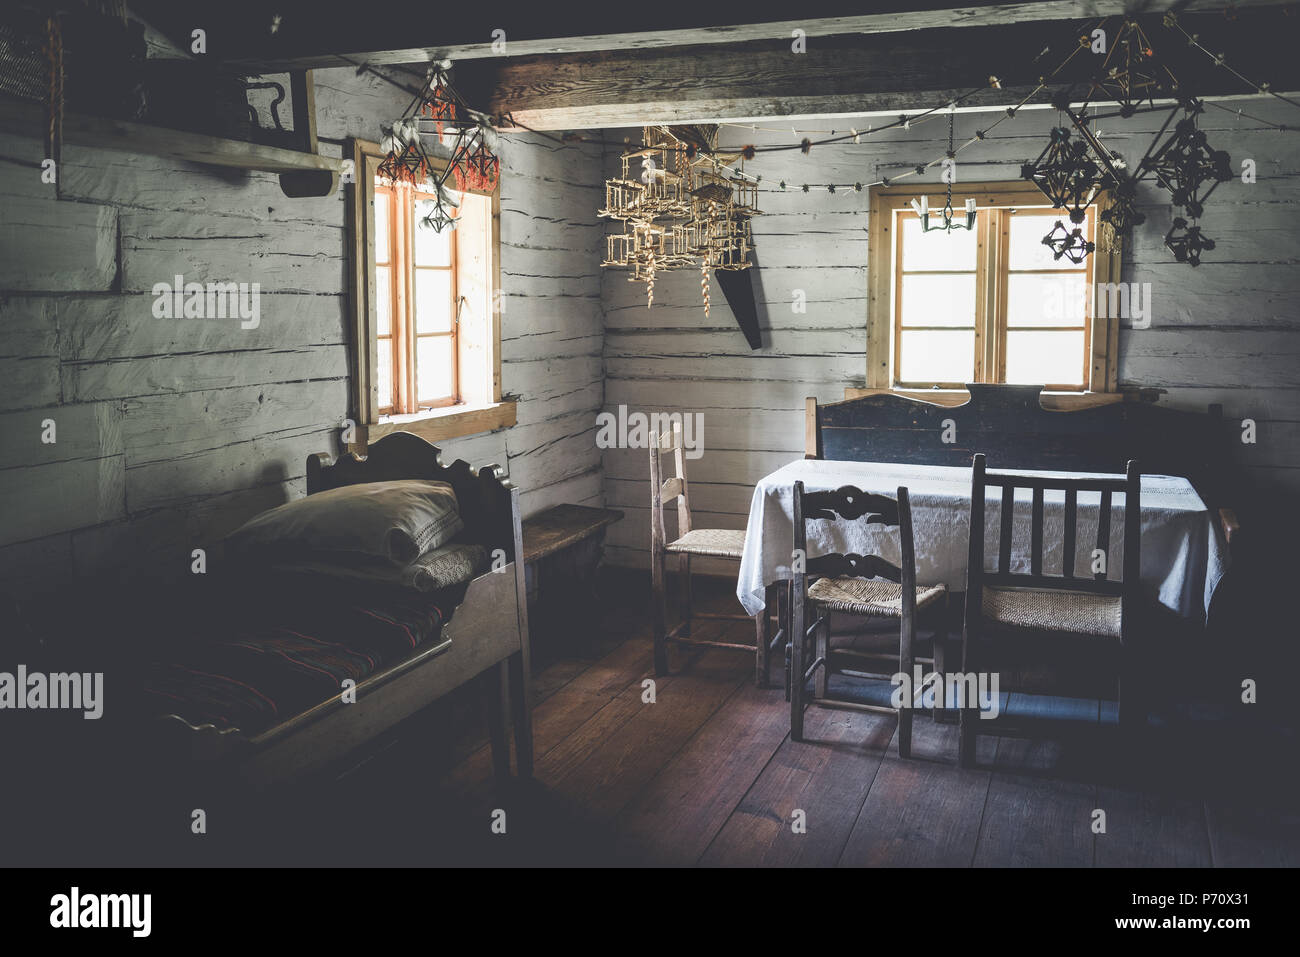 The interior of an old living room. Ethnographic Open-Air Museum, Latvia, Riga, 13.05.2018 - Stock Image